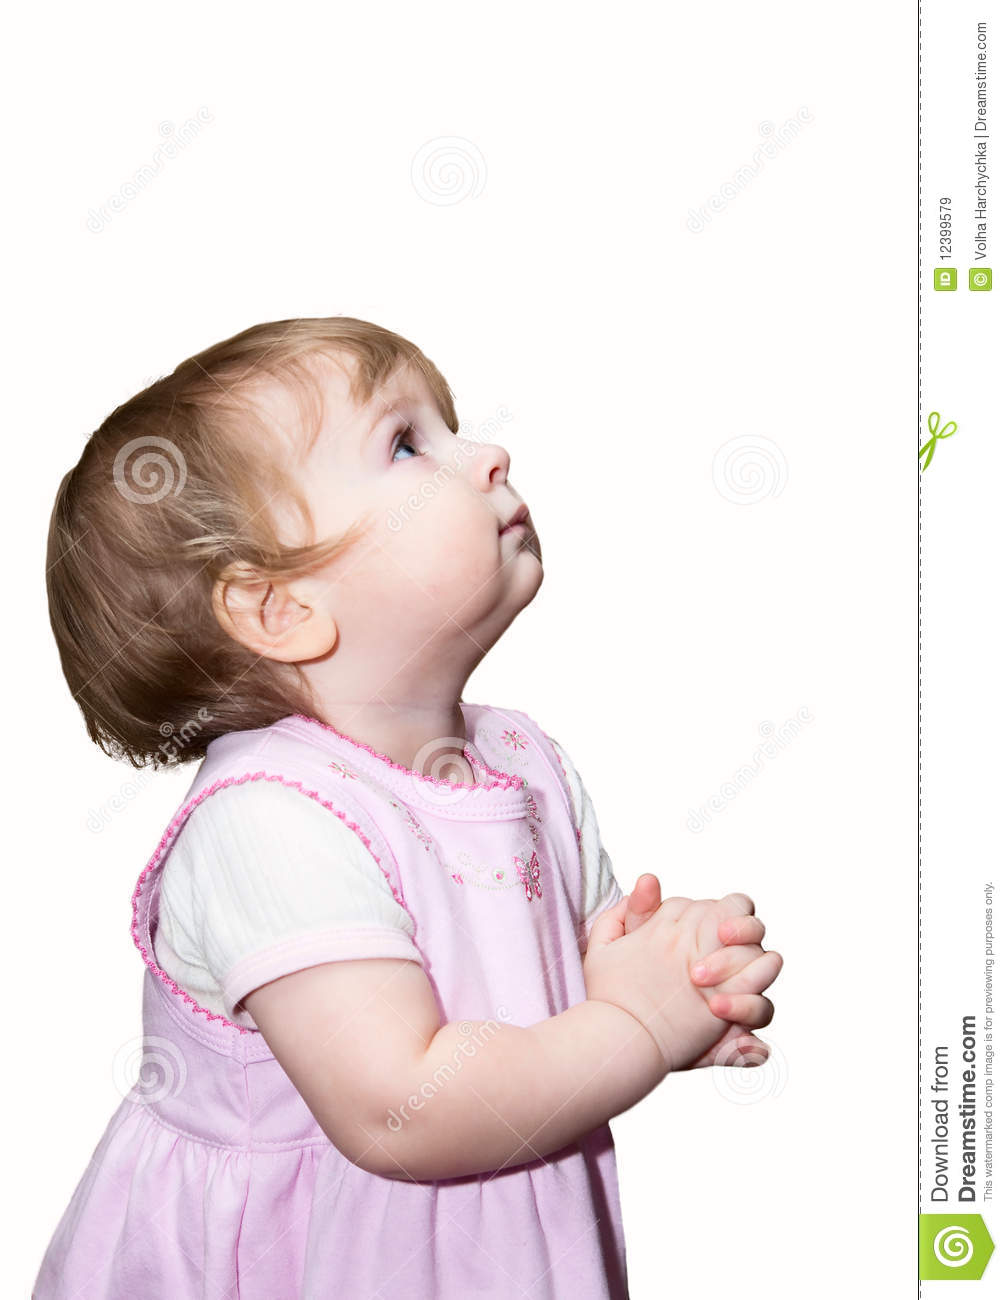 Small Girl Praying With Hands Together Stock Image Image Of